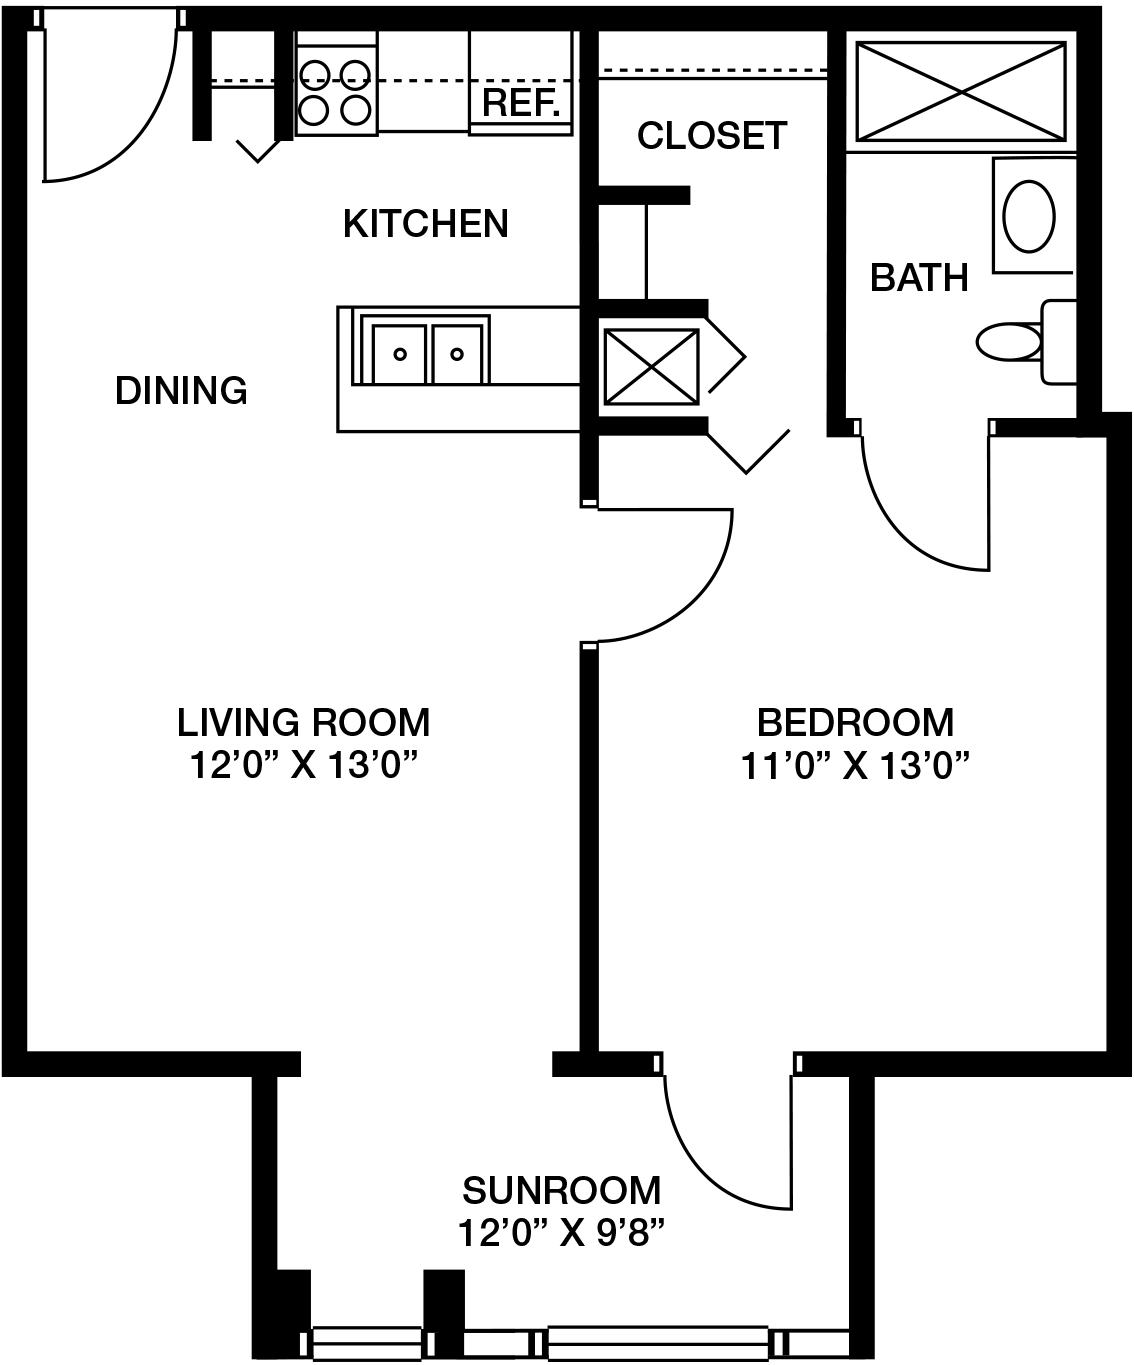 WV Village Oakleigh I-IV One Bedroom 600-675 Sq Ft.png